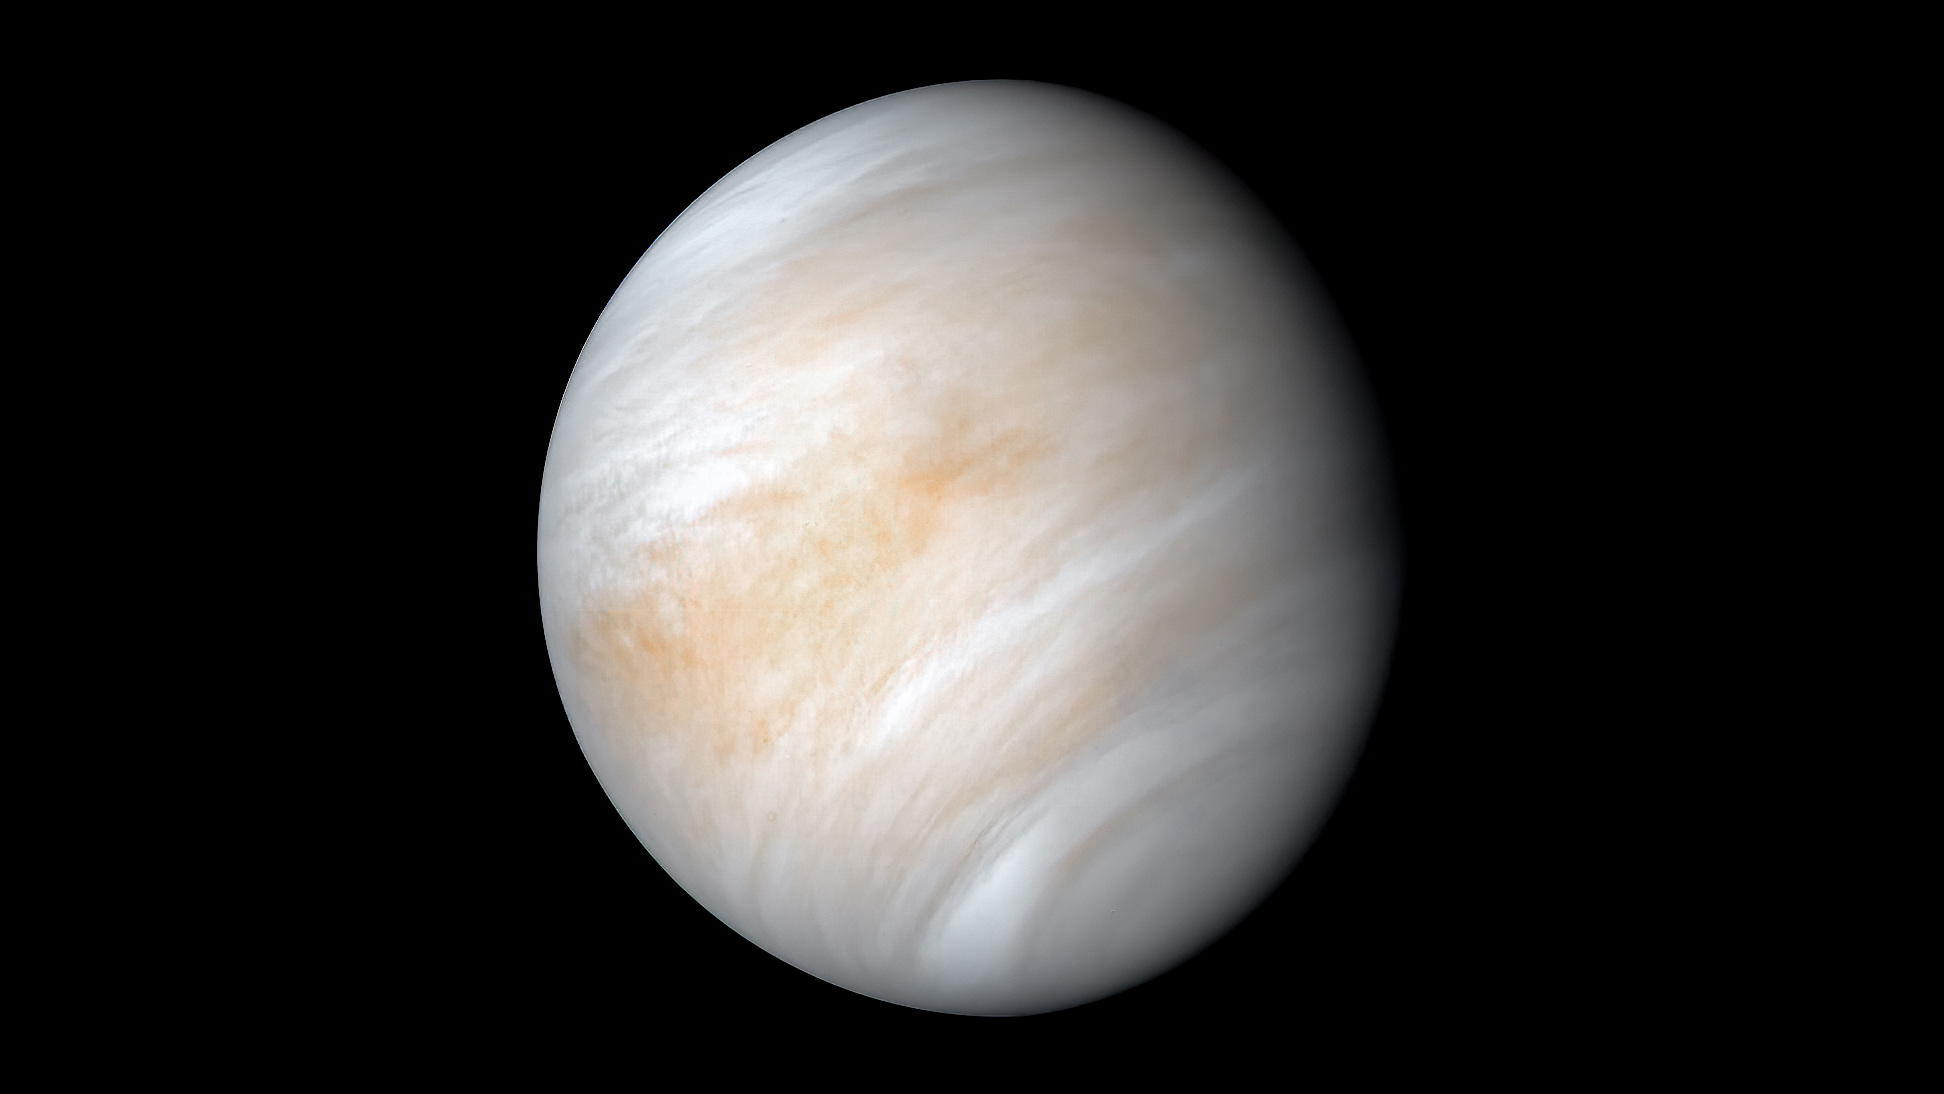 We beget got to circulate to Venus as quickly as that you simply might maybe per chance well be also take into consideration thumbnail